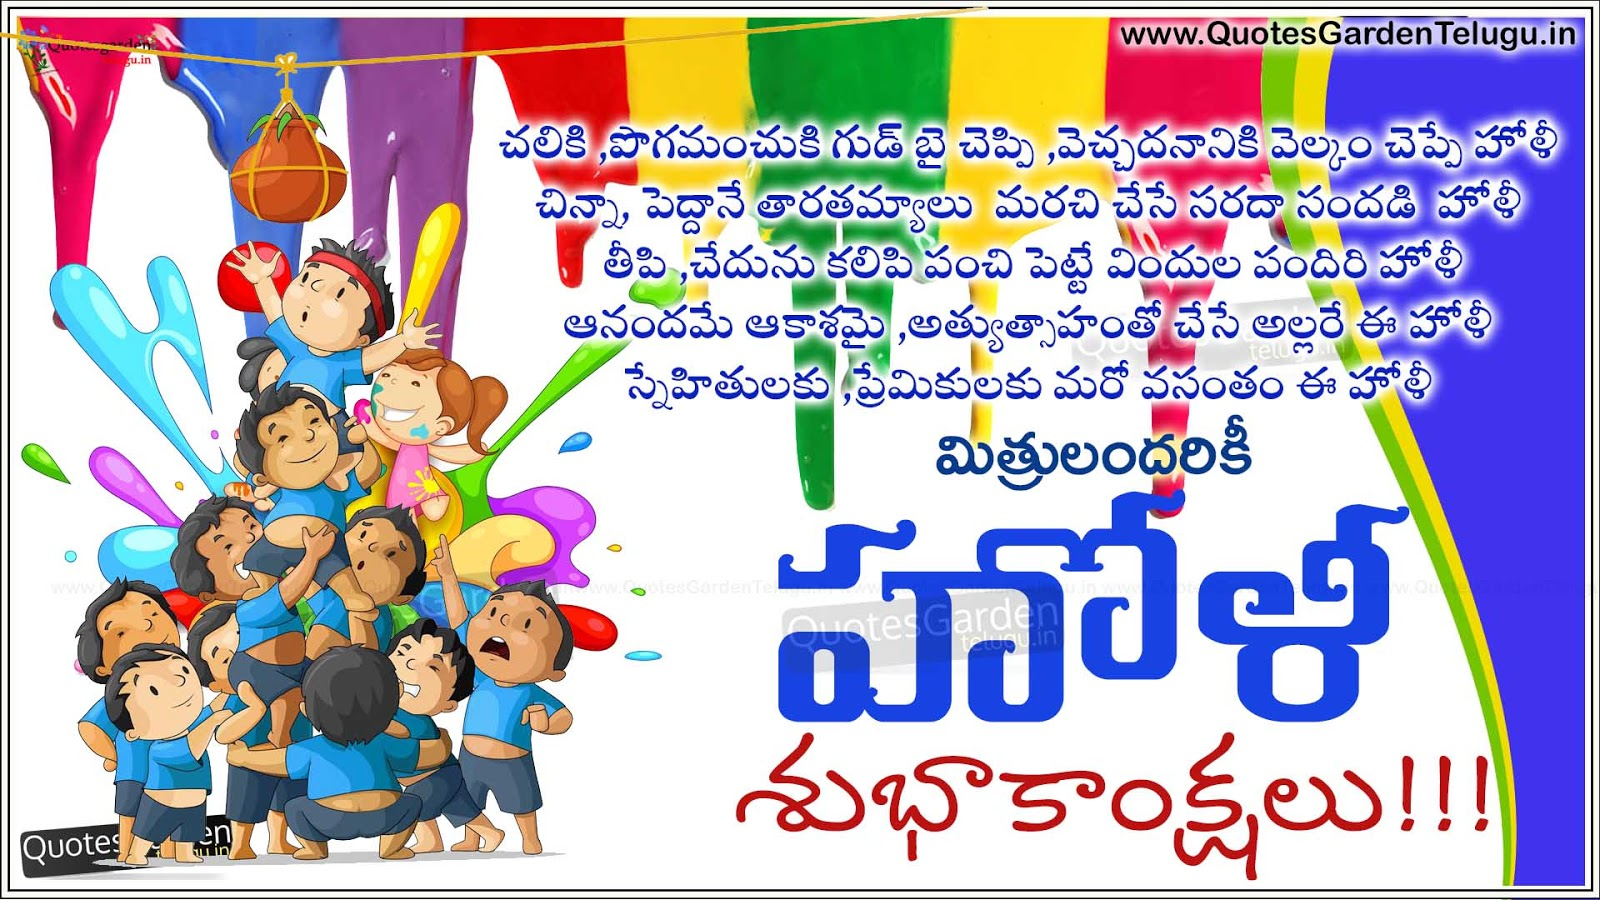 Happy holi telugu quotes wishes new latest telugu holi greetings new latest telugu holi greetings wallpapers m4hsunfo